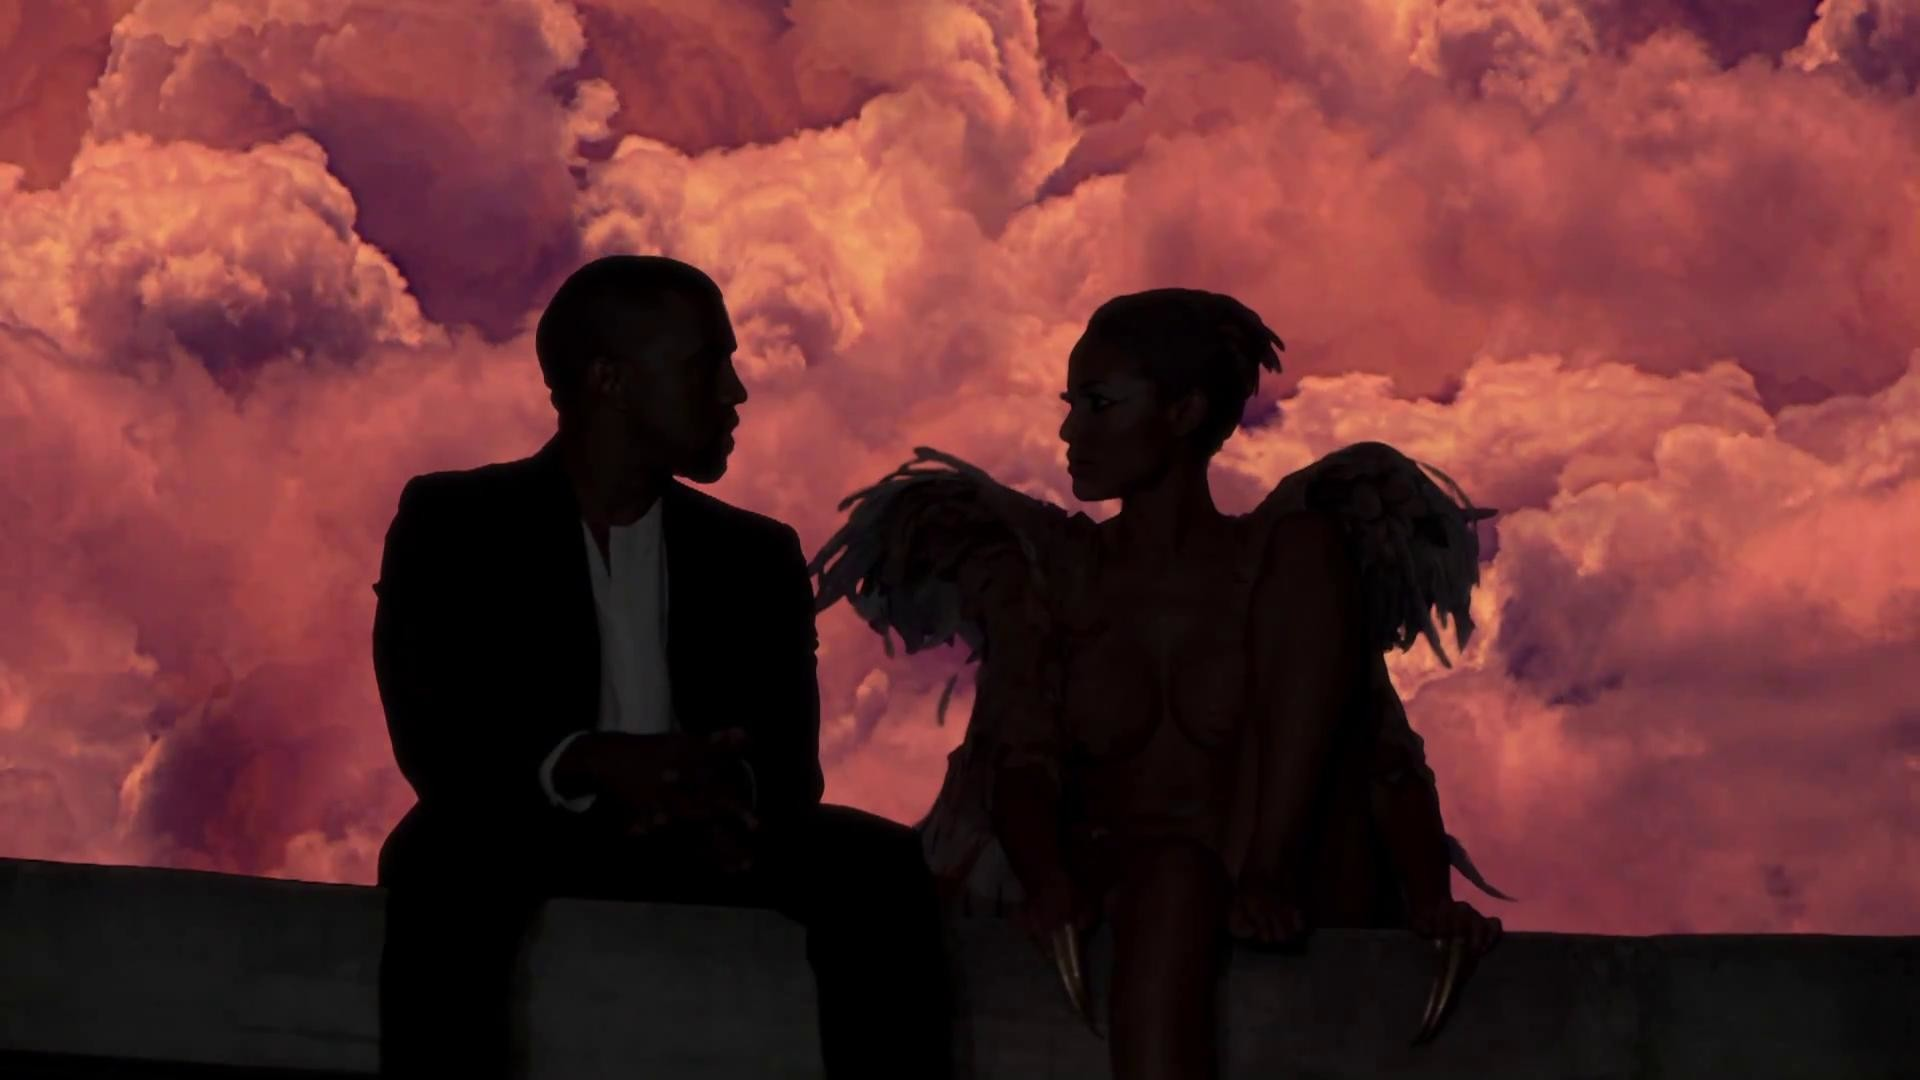 Kanye West Runaway Wallpapers Hd Resolution